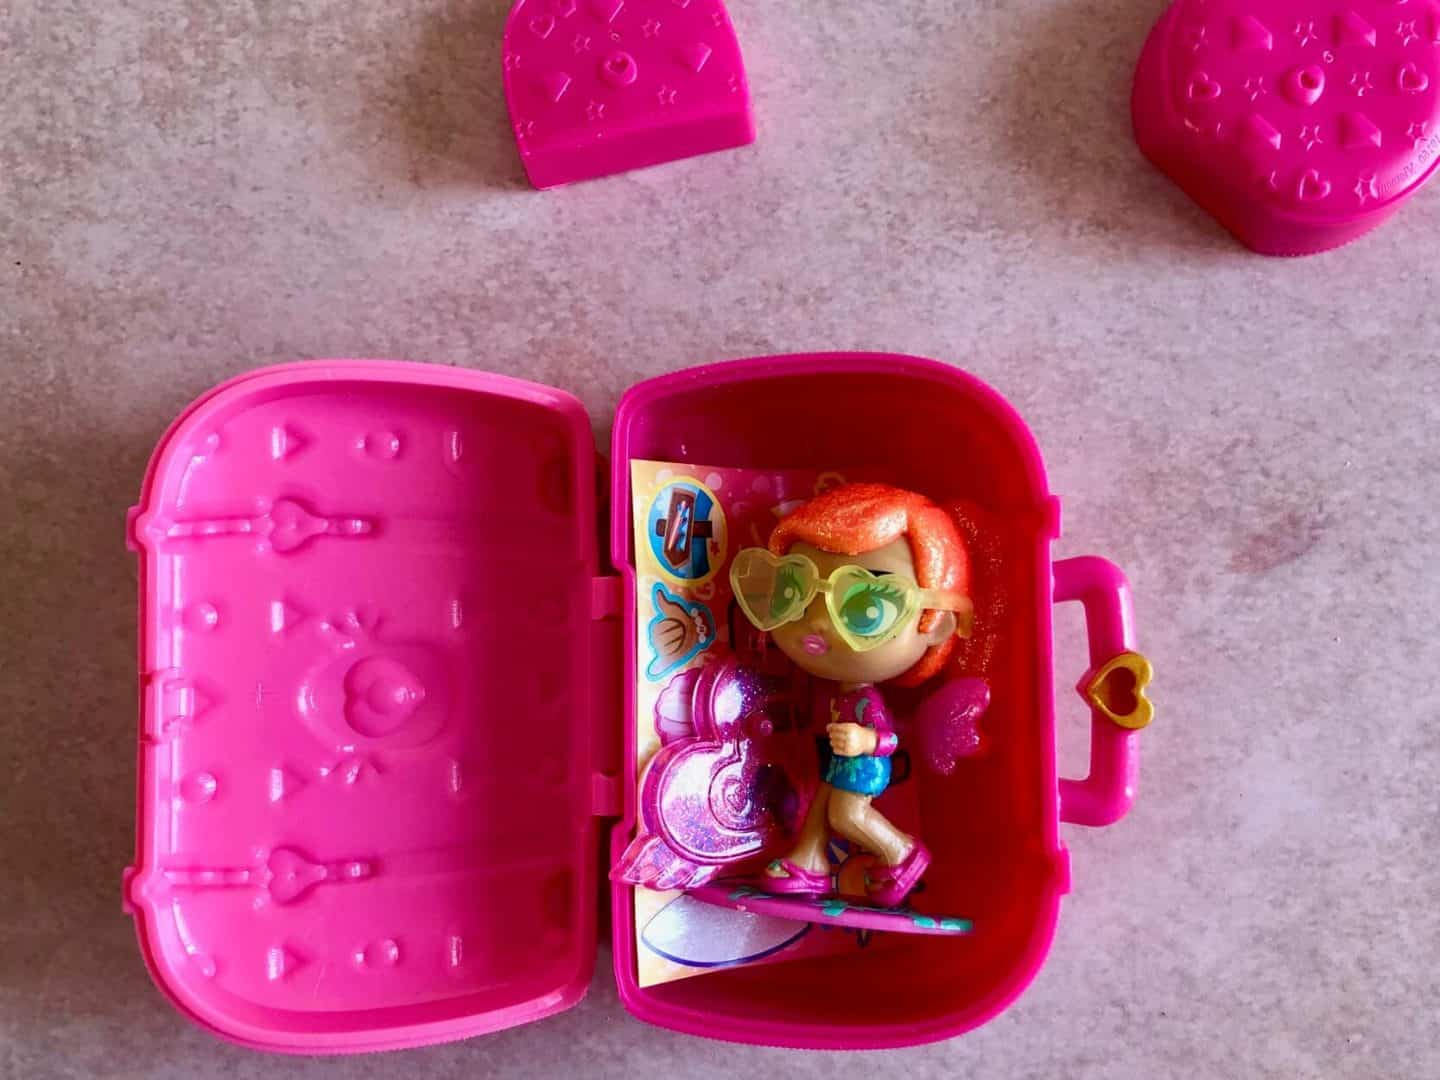 Sunshine Sara - Hatchimals Pixies Vacay Style inside suitcase